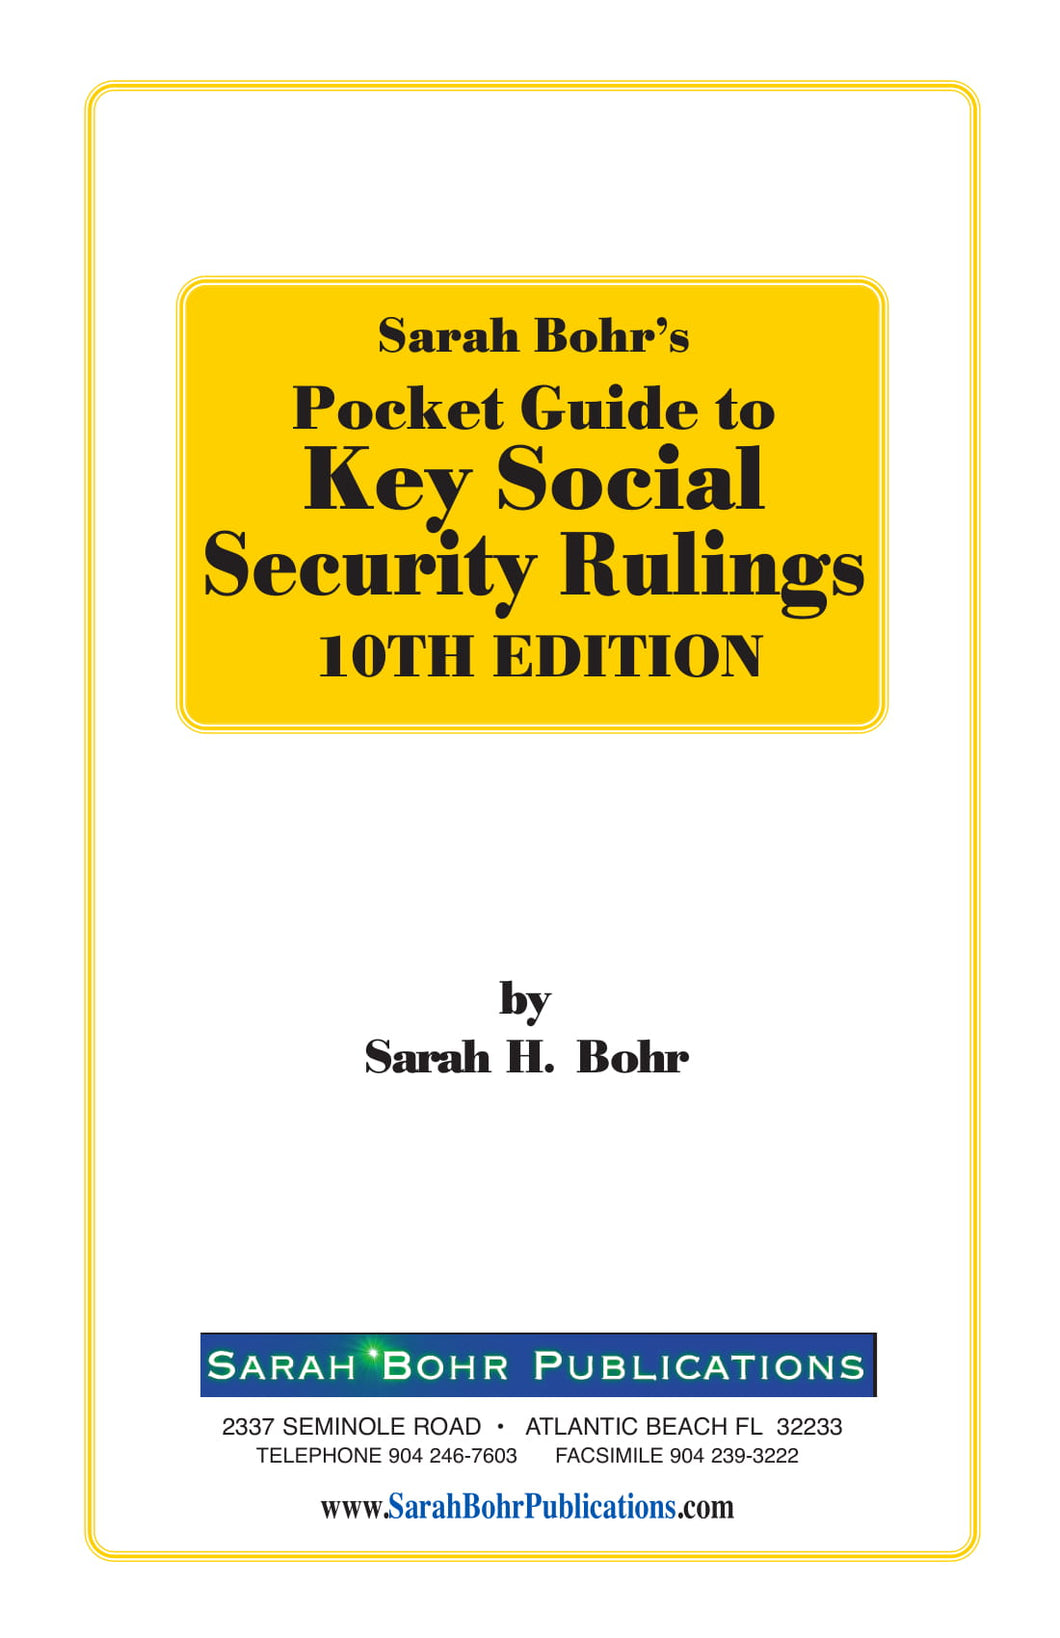 Pocket Guide to Key Social Security Rulings 10th Edition (Digital Download)